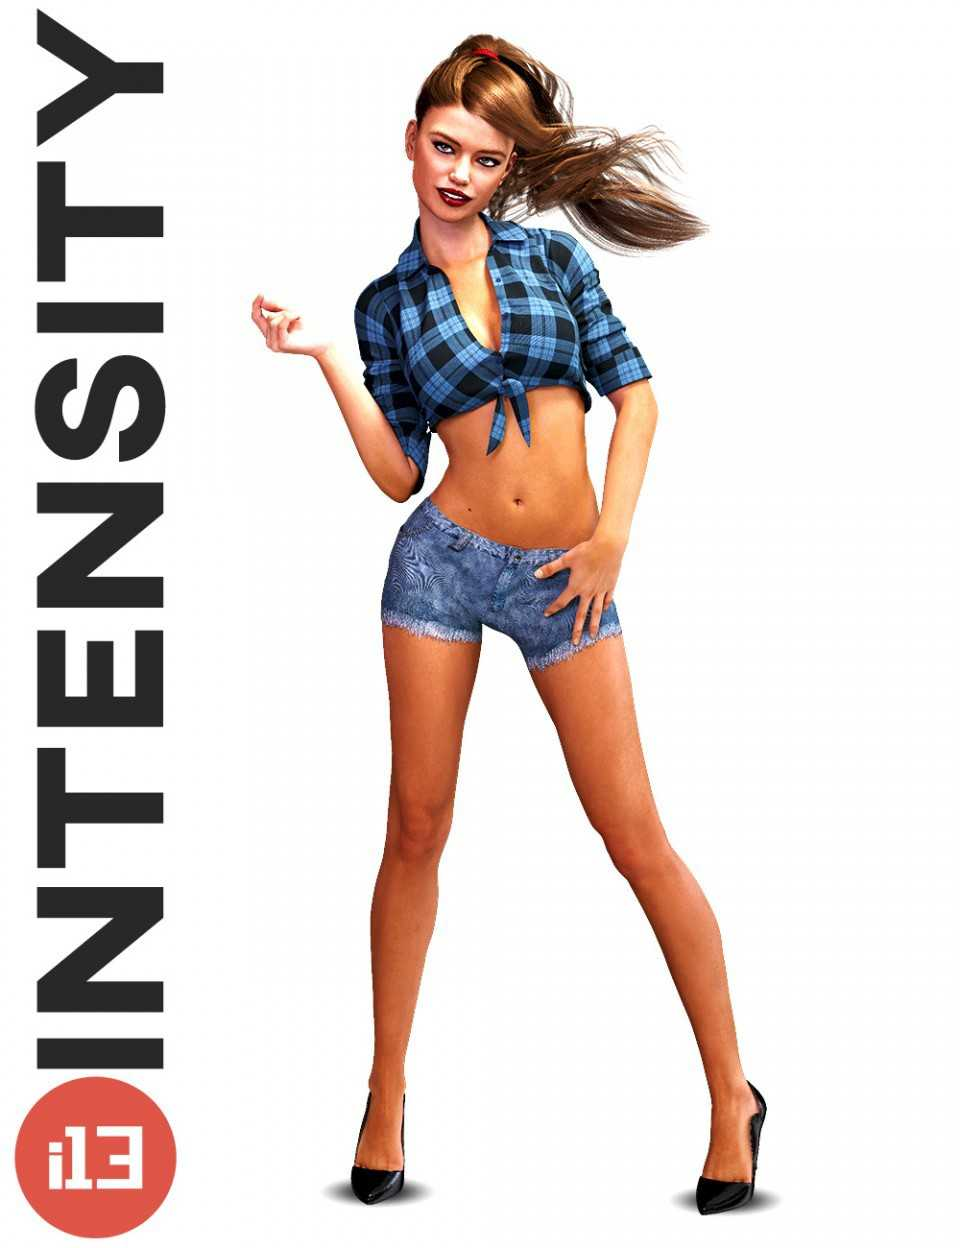 i13 Intensity Pose Collection for the Genesis 3 Female(s)